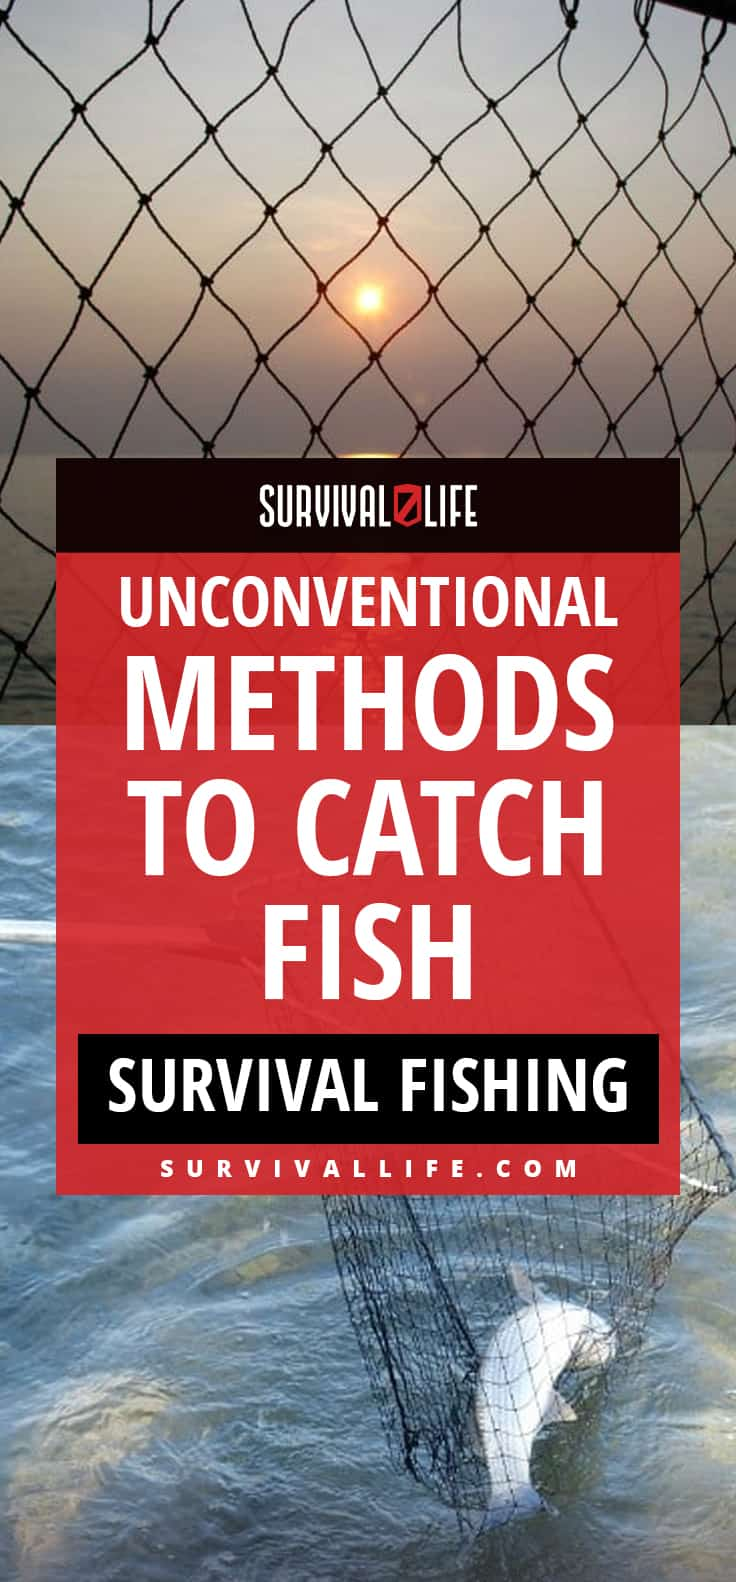 Survival Fishing | Unconventional Methods To Catch Fish